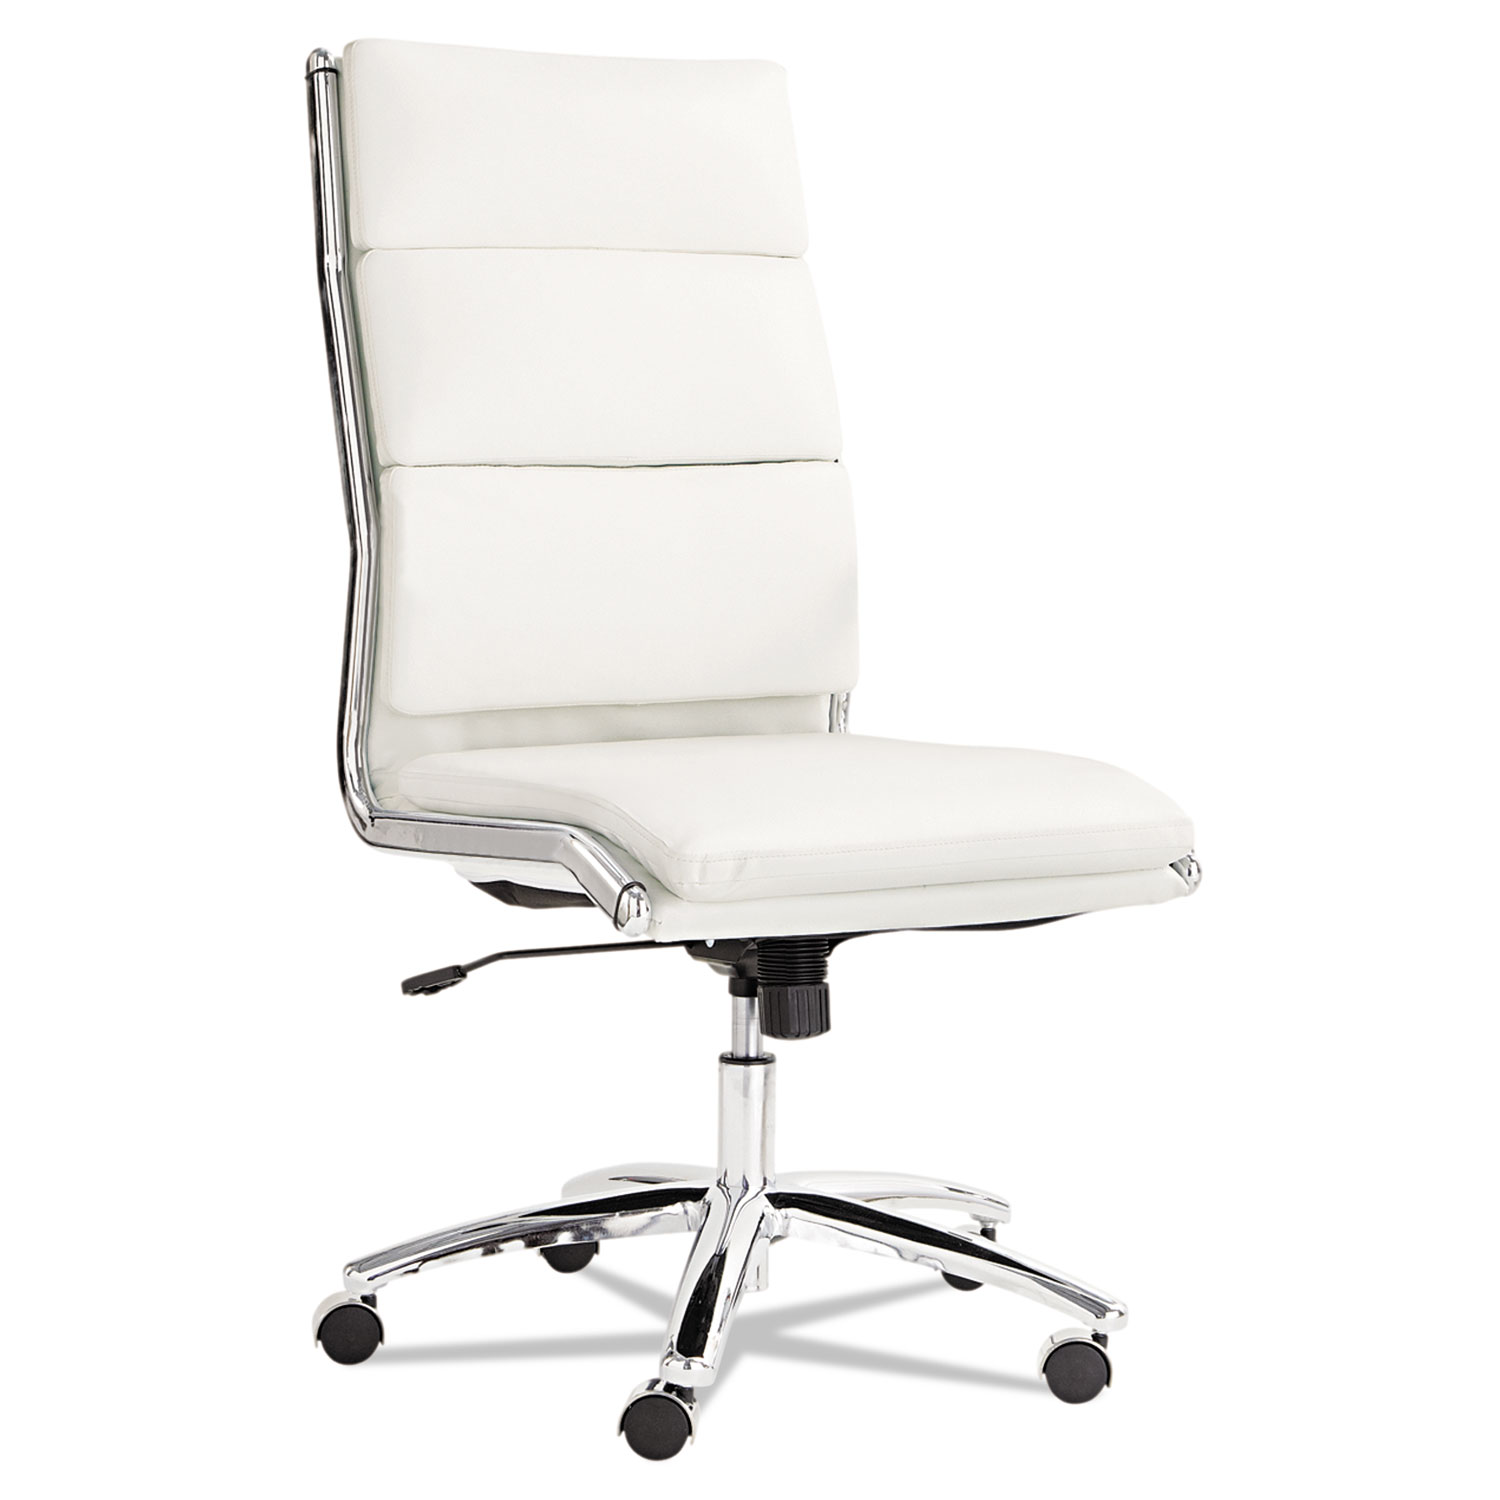 Alera Chair Alera Neratoli Series High Back Swivel Tilt Office Chair